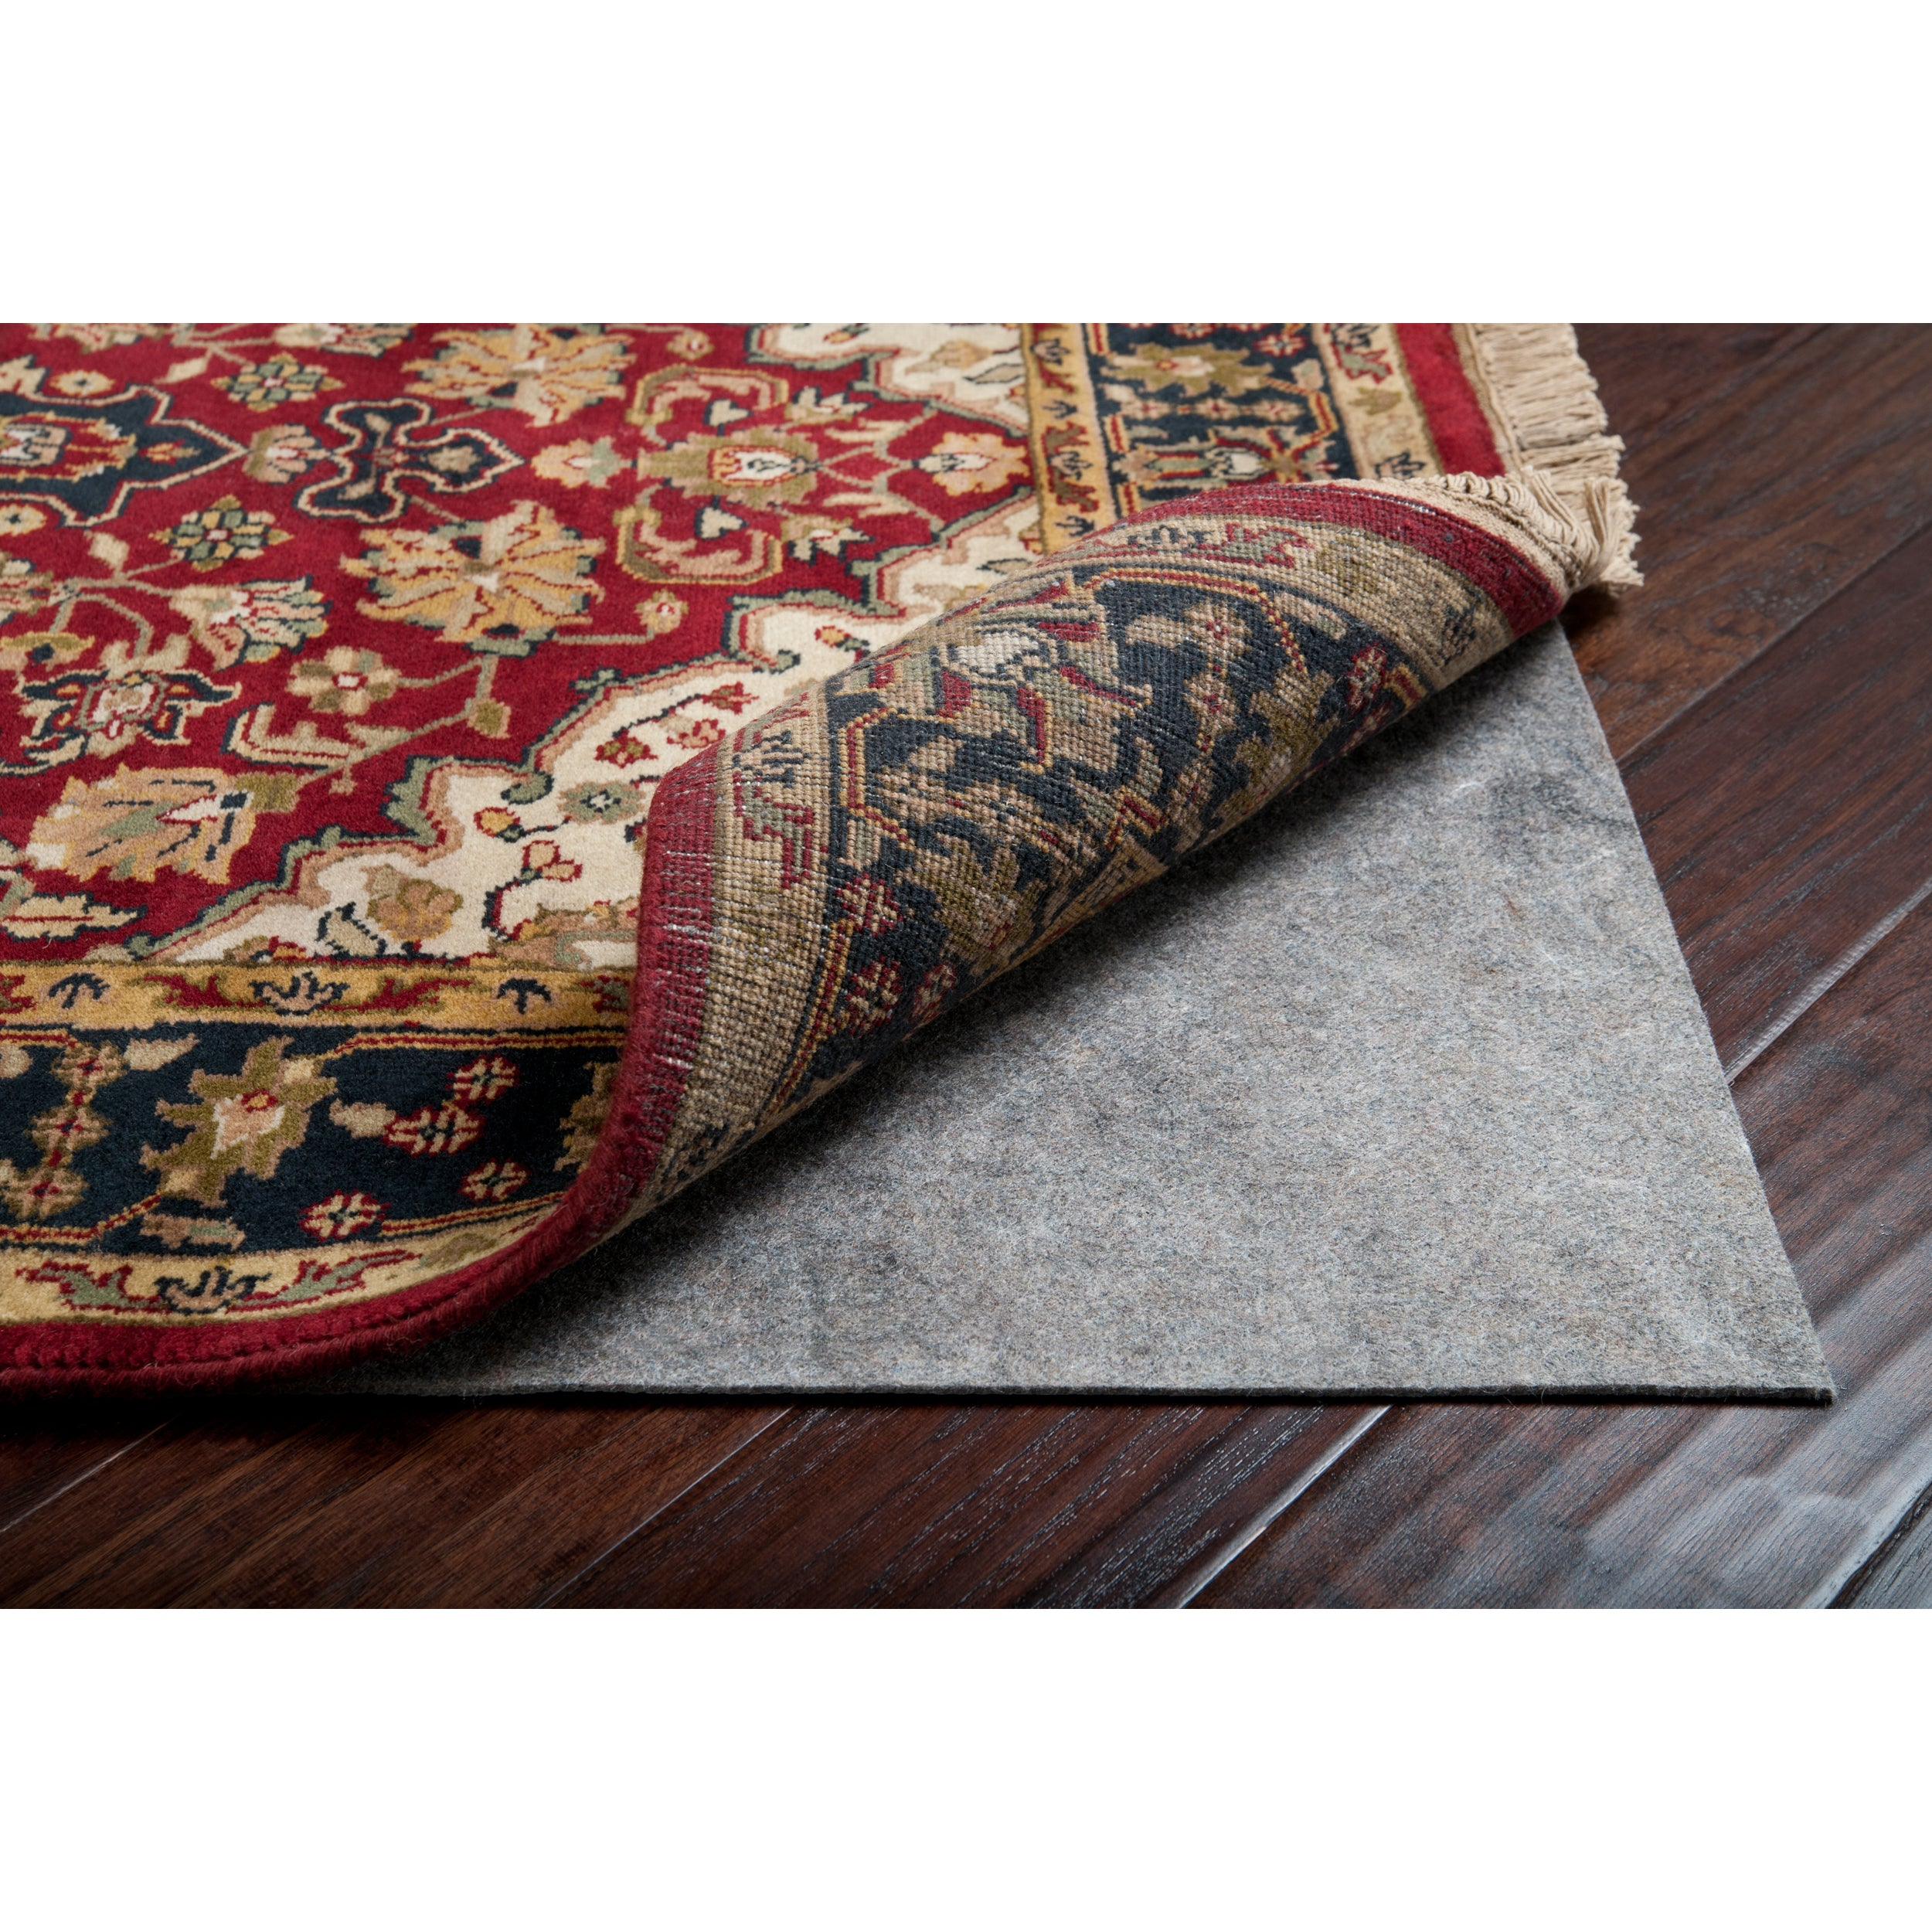 Rotell Rug Pad (2' x 12')